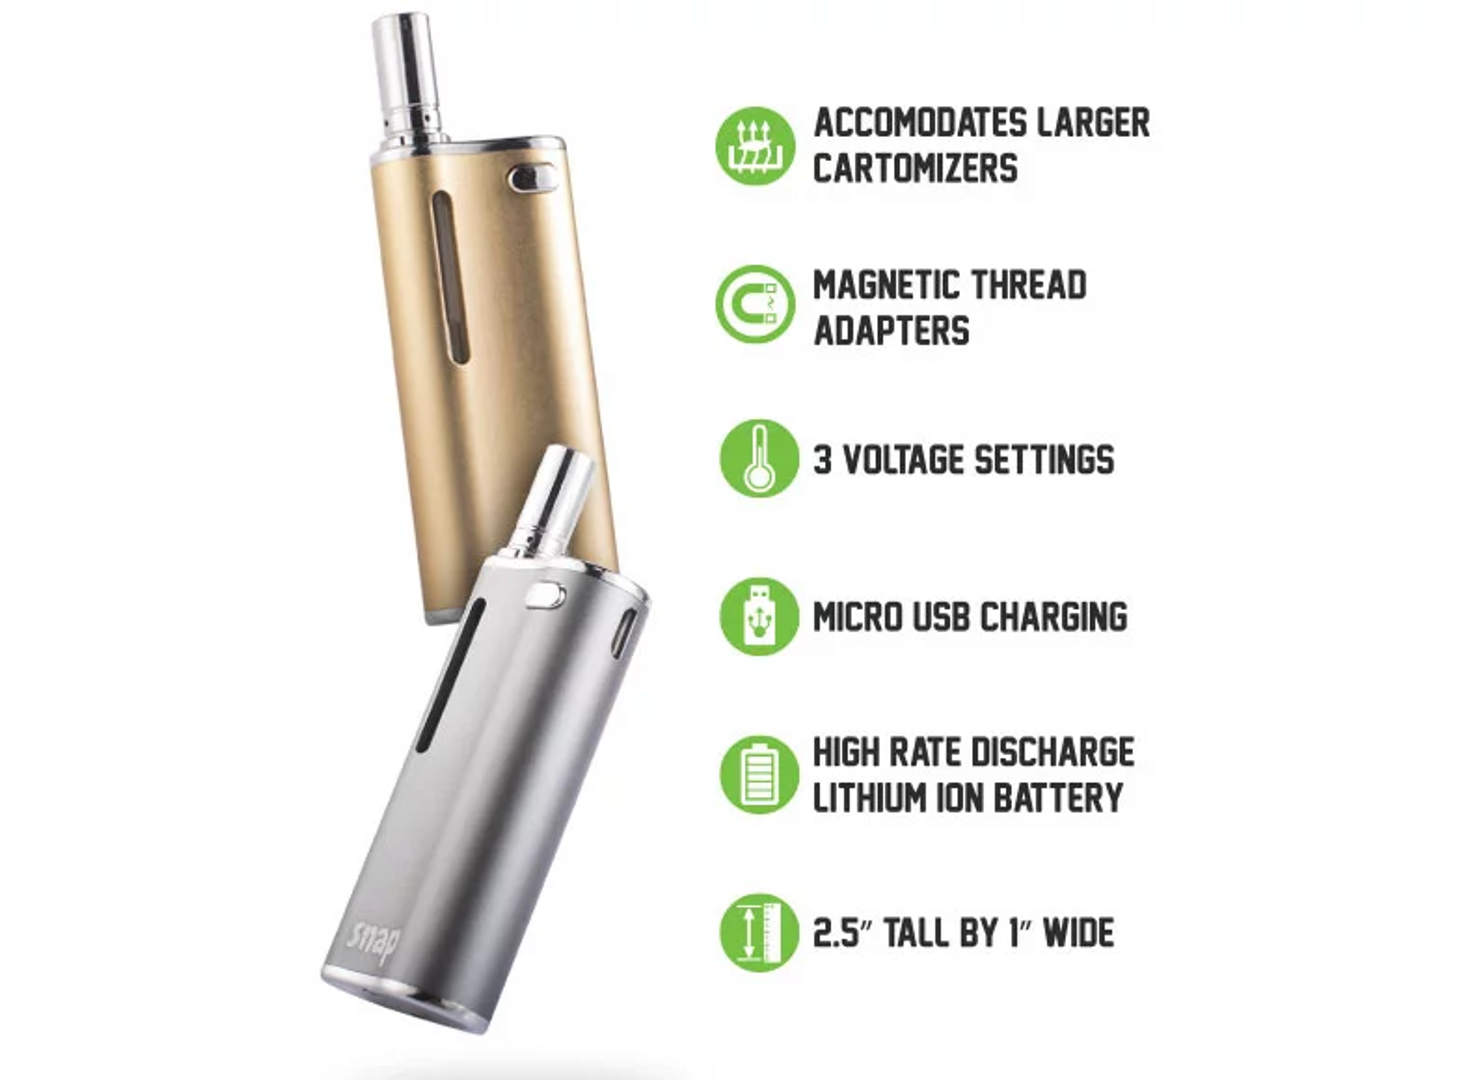 EXXUS - Snap Vaporizer for Pre-Filled Cartridges